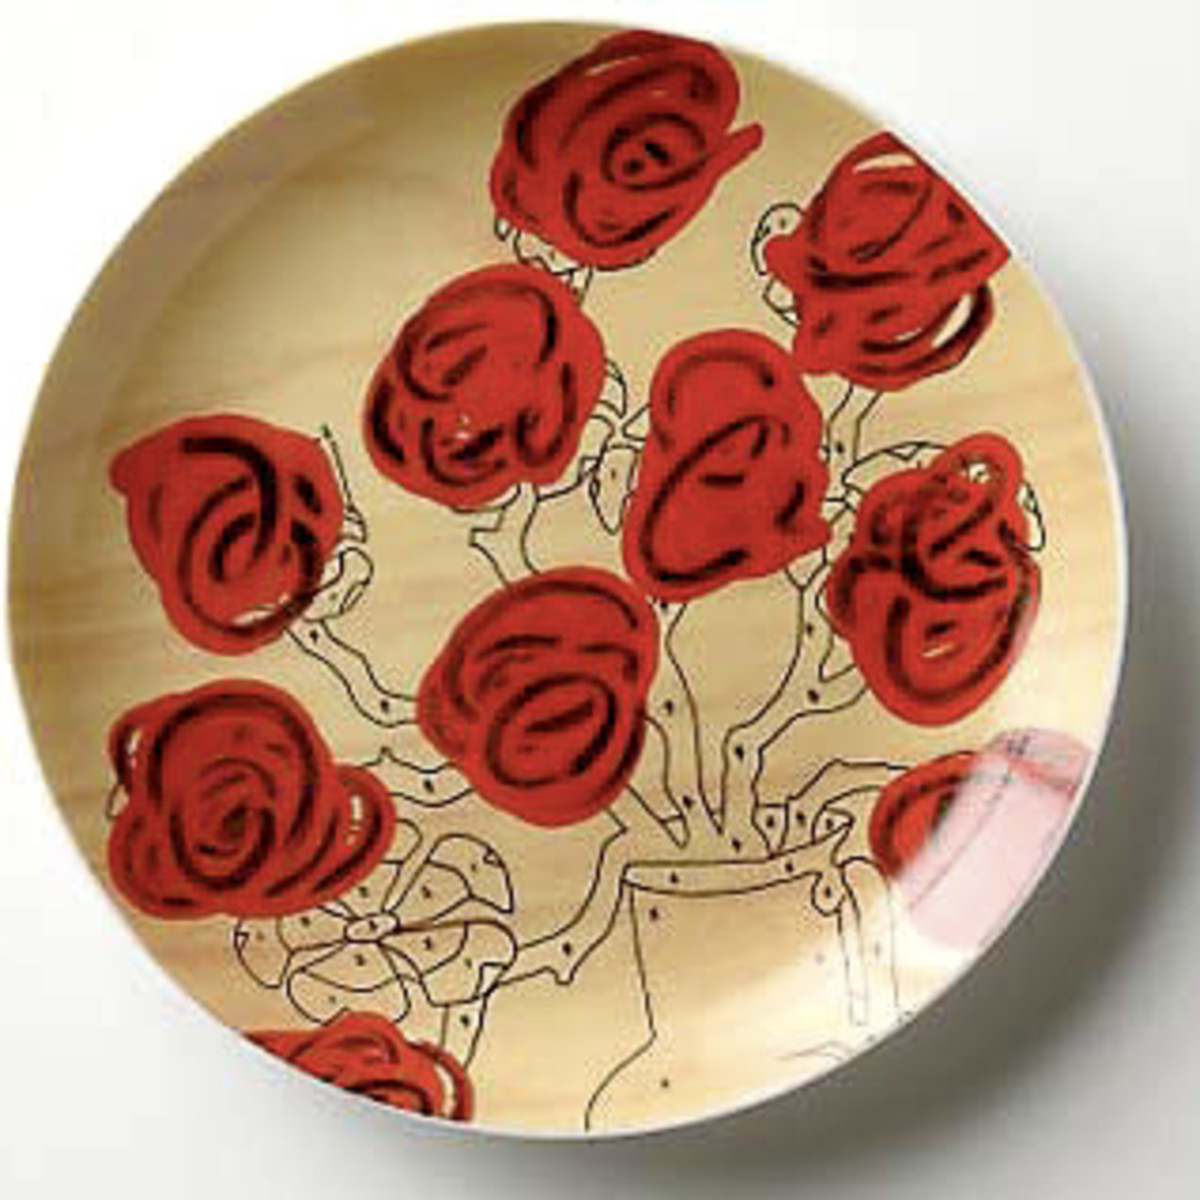 News_Trey Speegle_Anthropologie collection_Nov. 2009_plate